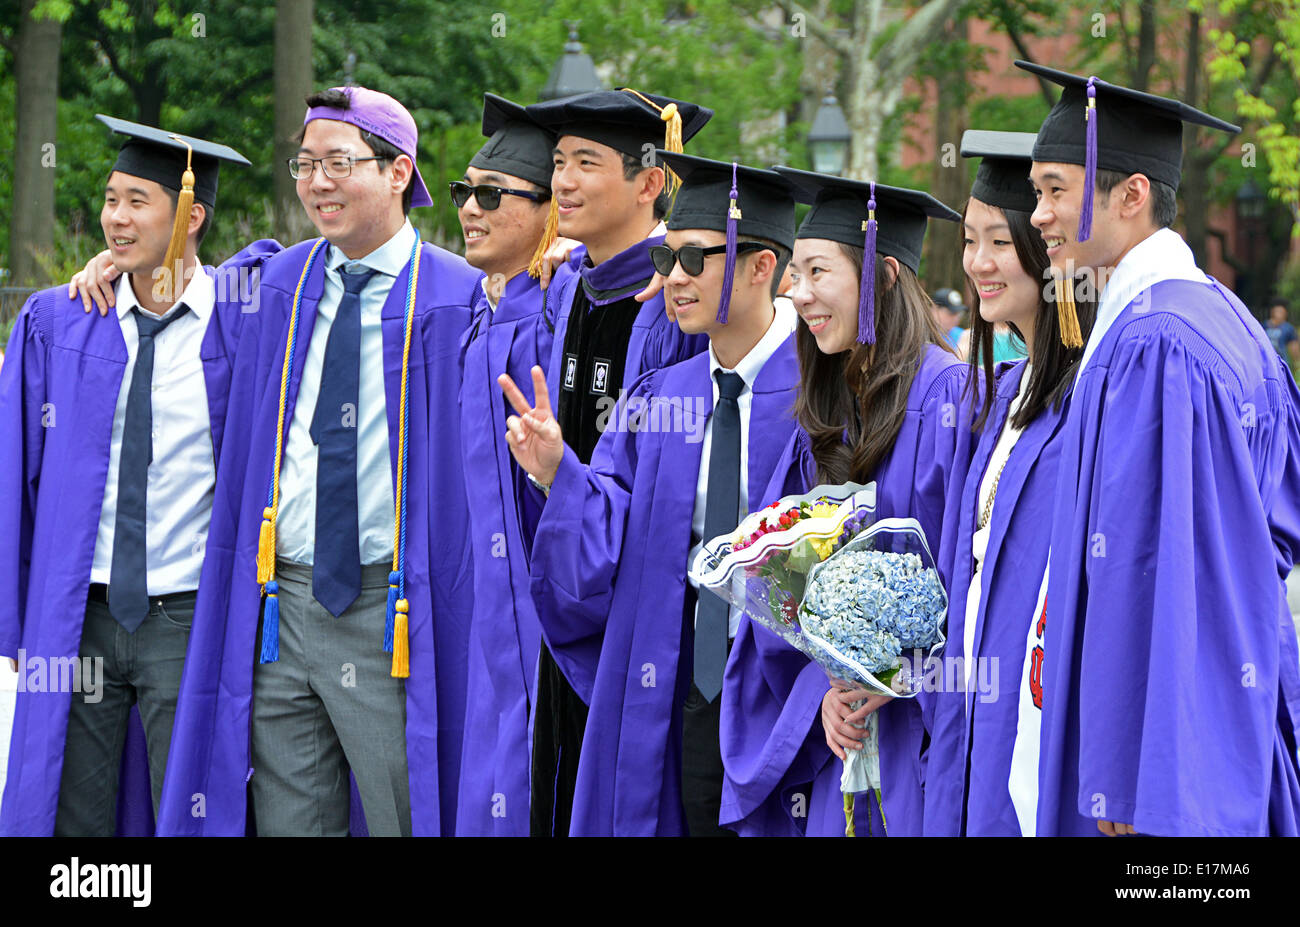 Modern Unc Cap And Gown Images - Wedding and flowers ispiration ...